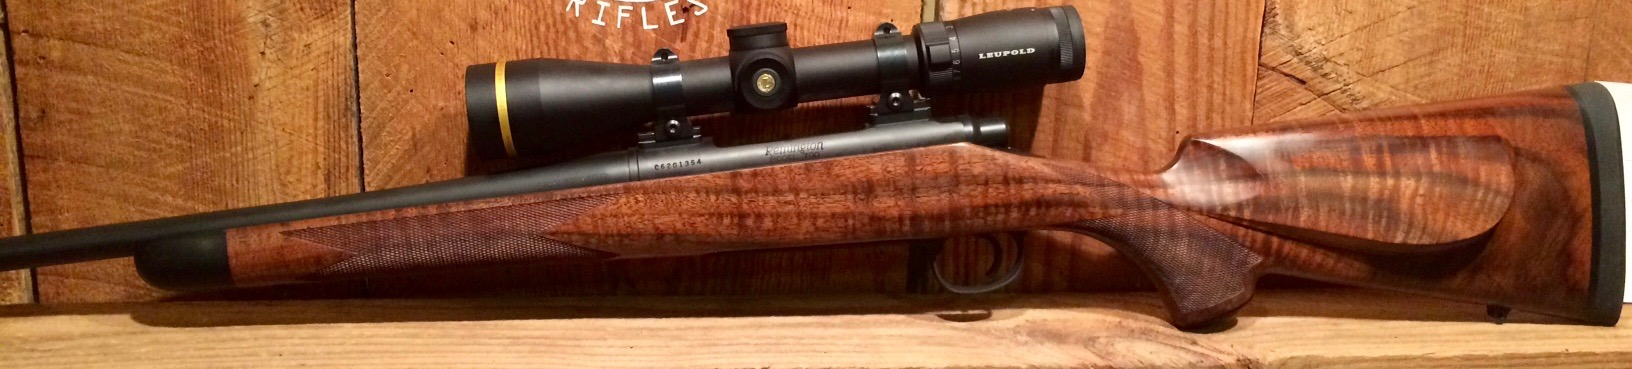 Replacement stock Winchester M70 Alaskan  375 | Hunting